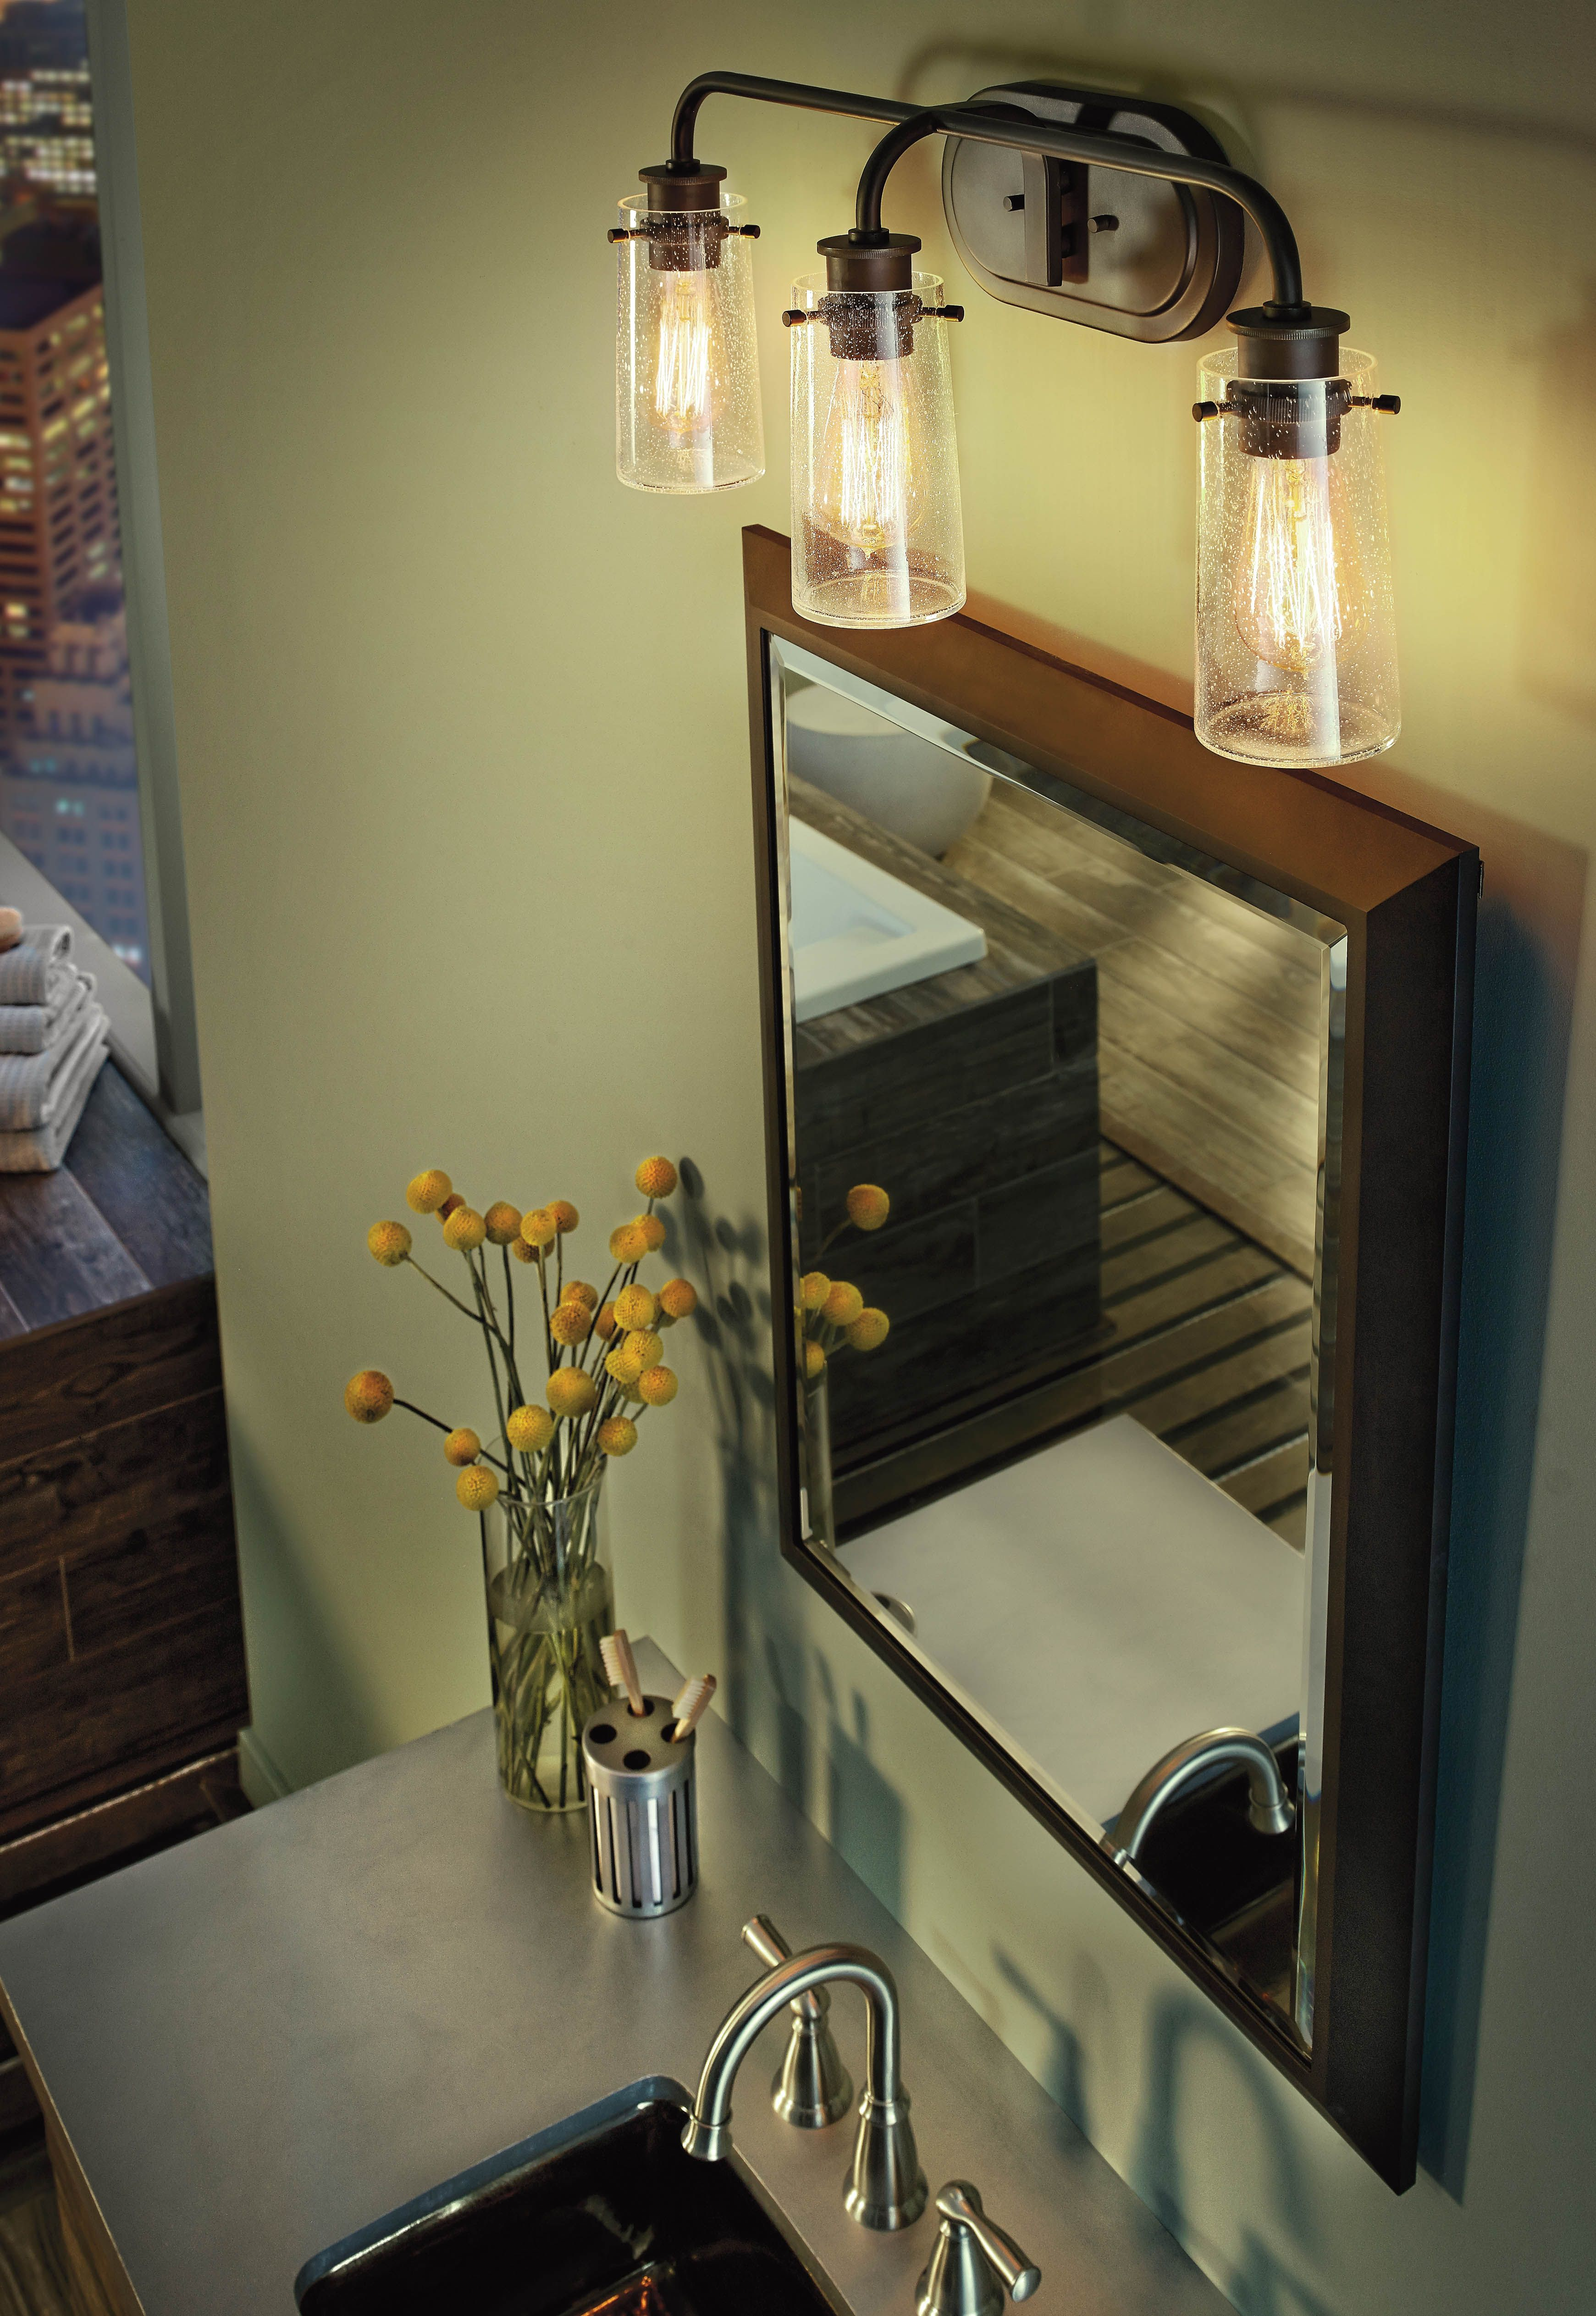 Bring a rustic light approach to your overhead vanity lighting in bring a rustic light approach to your overhead vanity lighting in your bathroom it is aloadofball Gallery